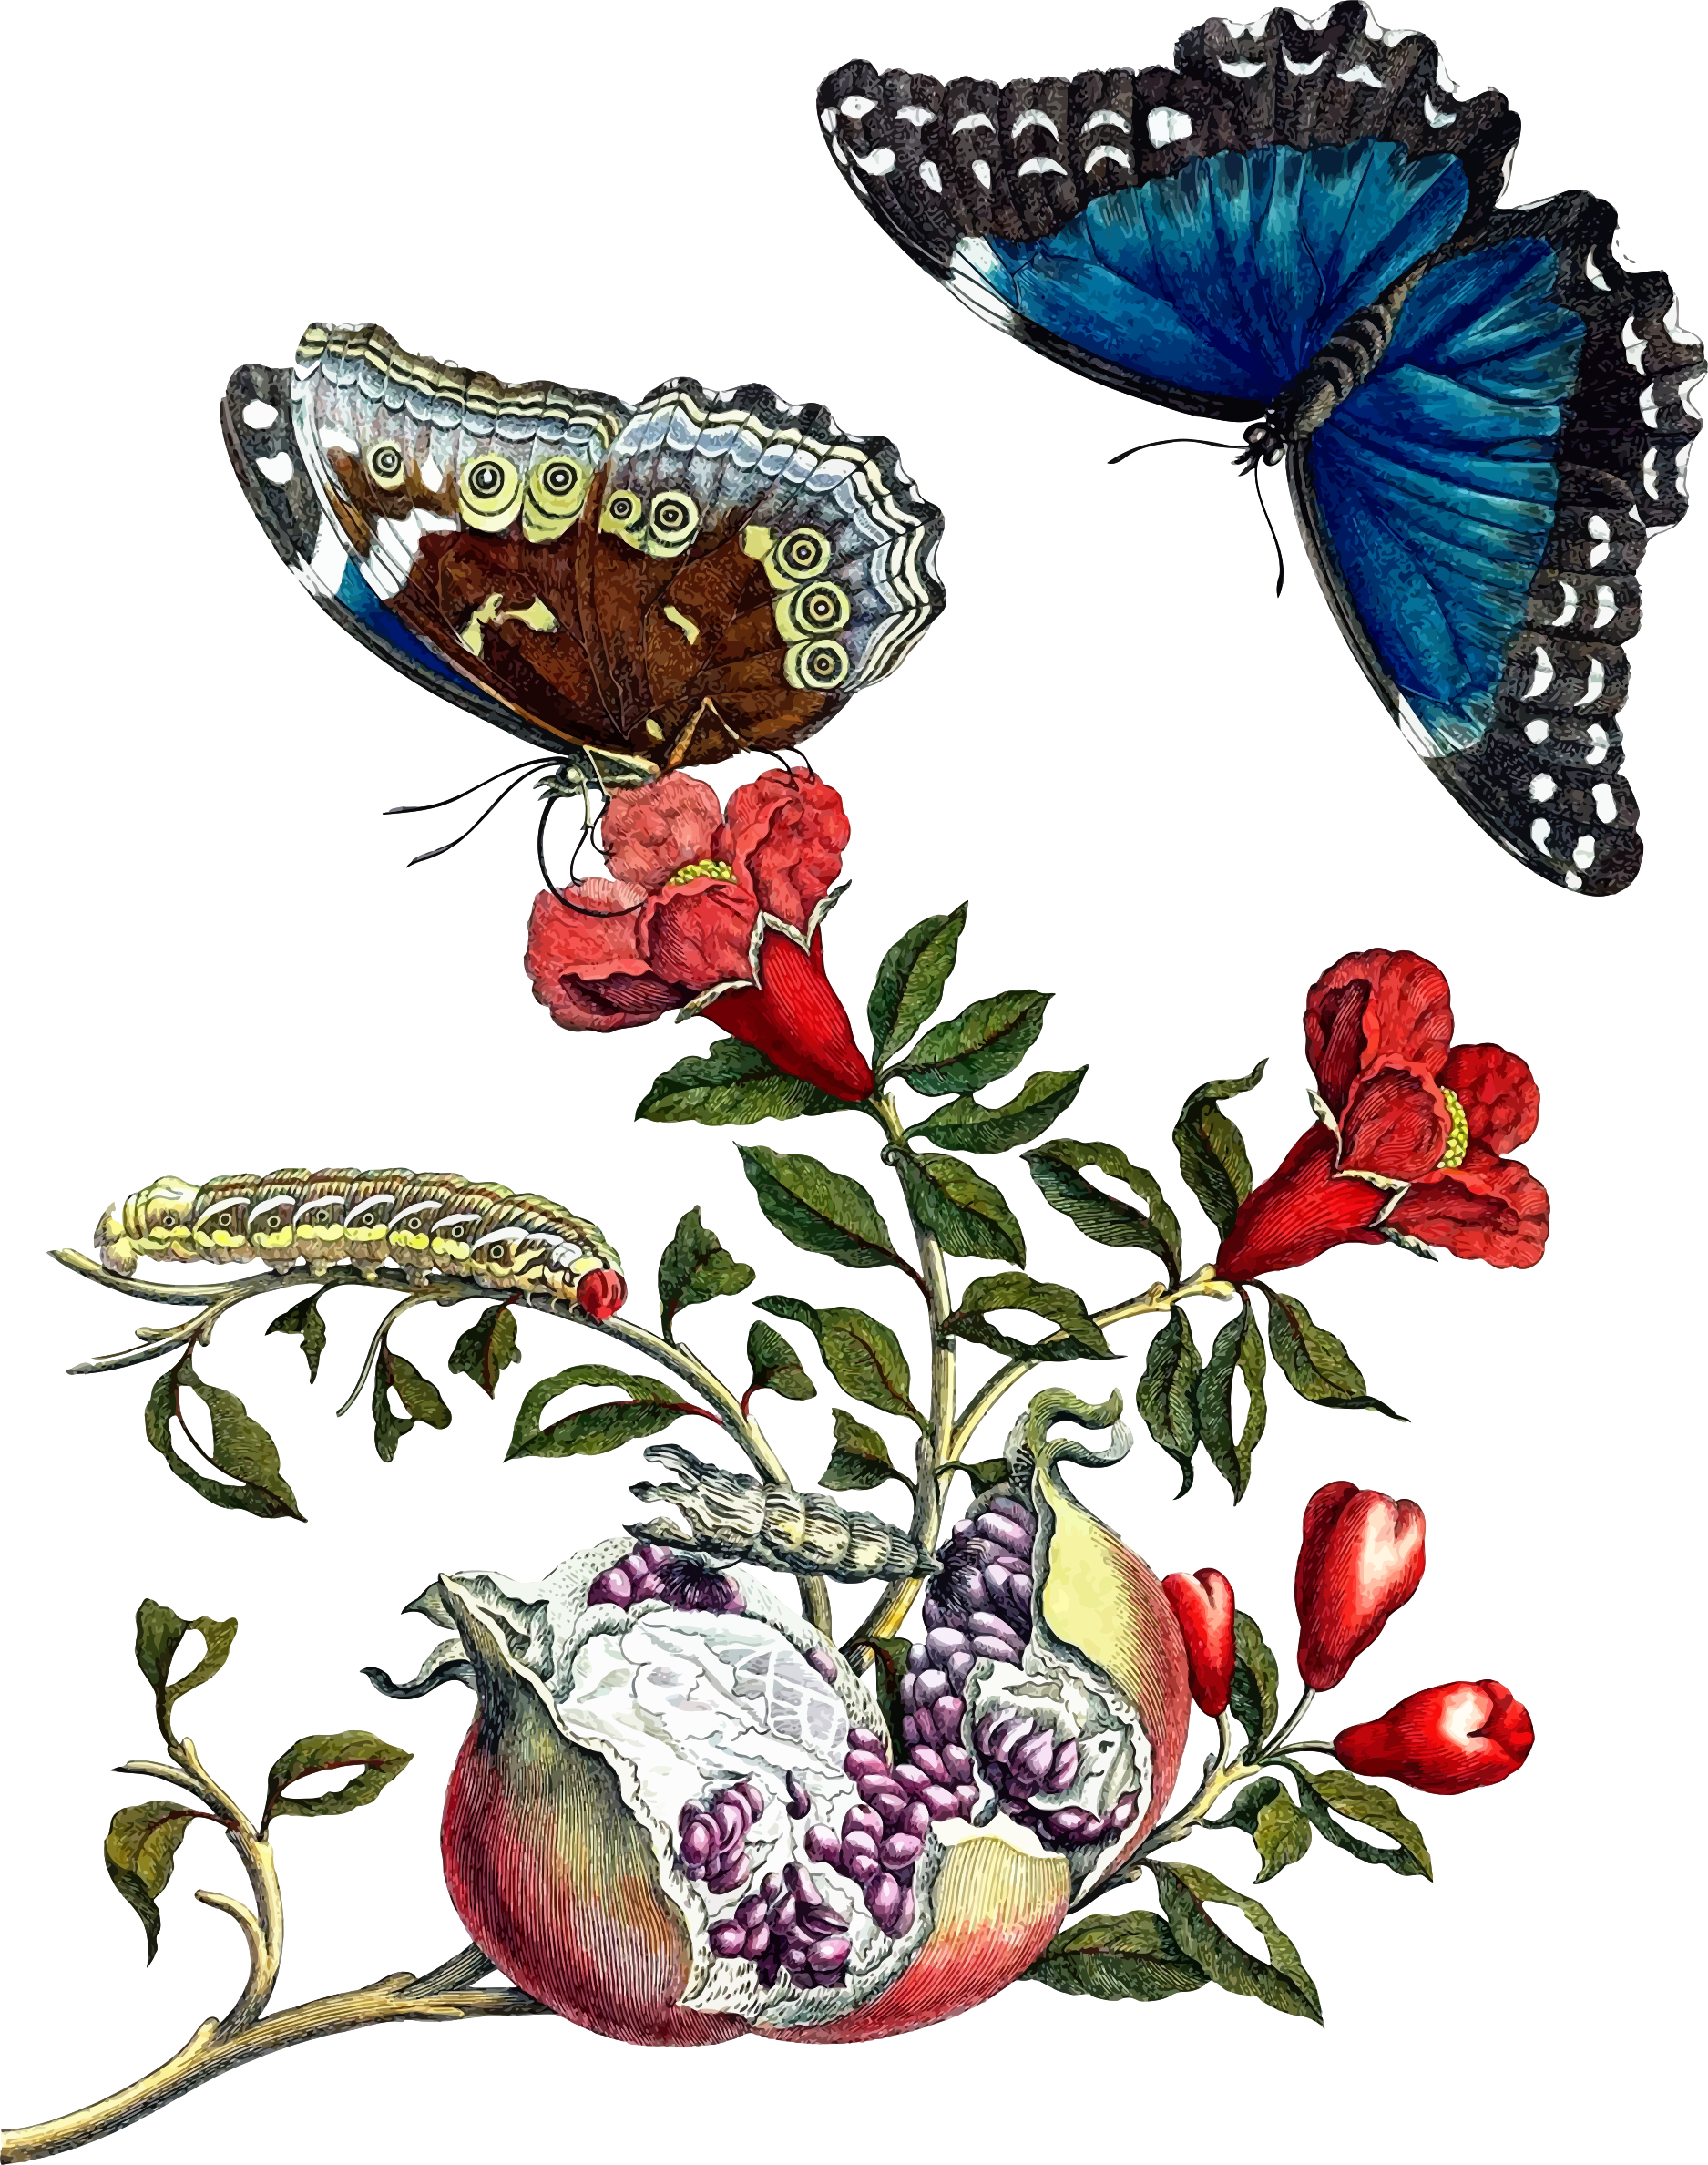 Butterflies on pomegranate by Firkin